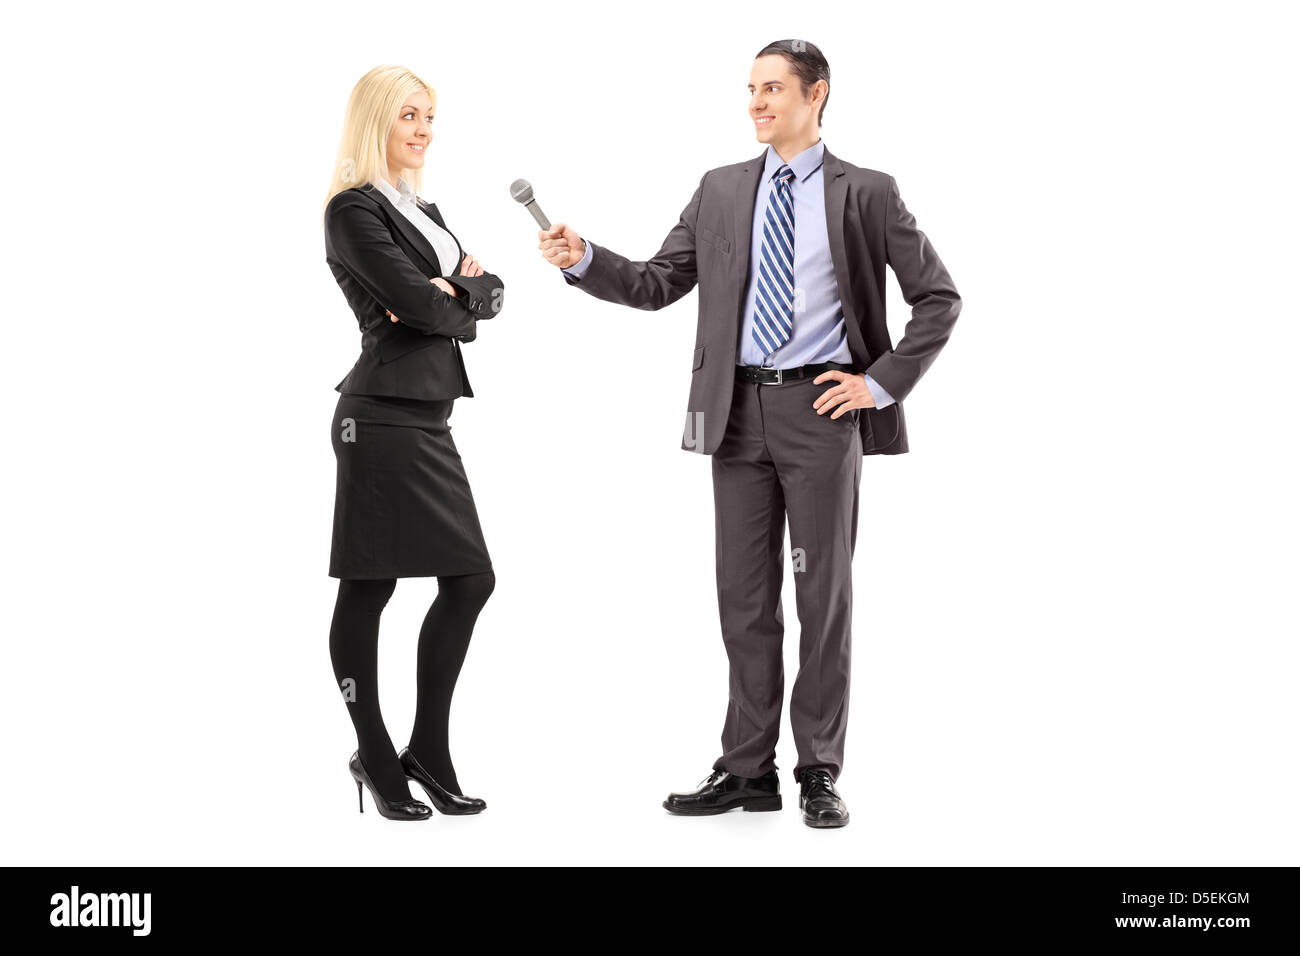 Full length portrait of a businesswoman and male reporter having an interview, isolated on white background - Stock Image